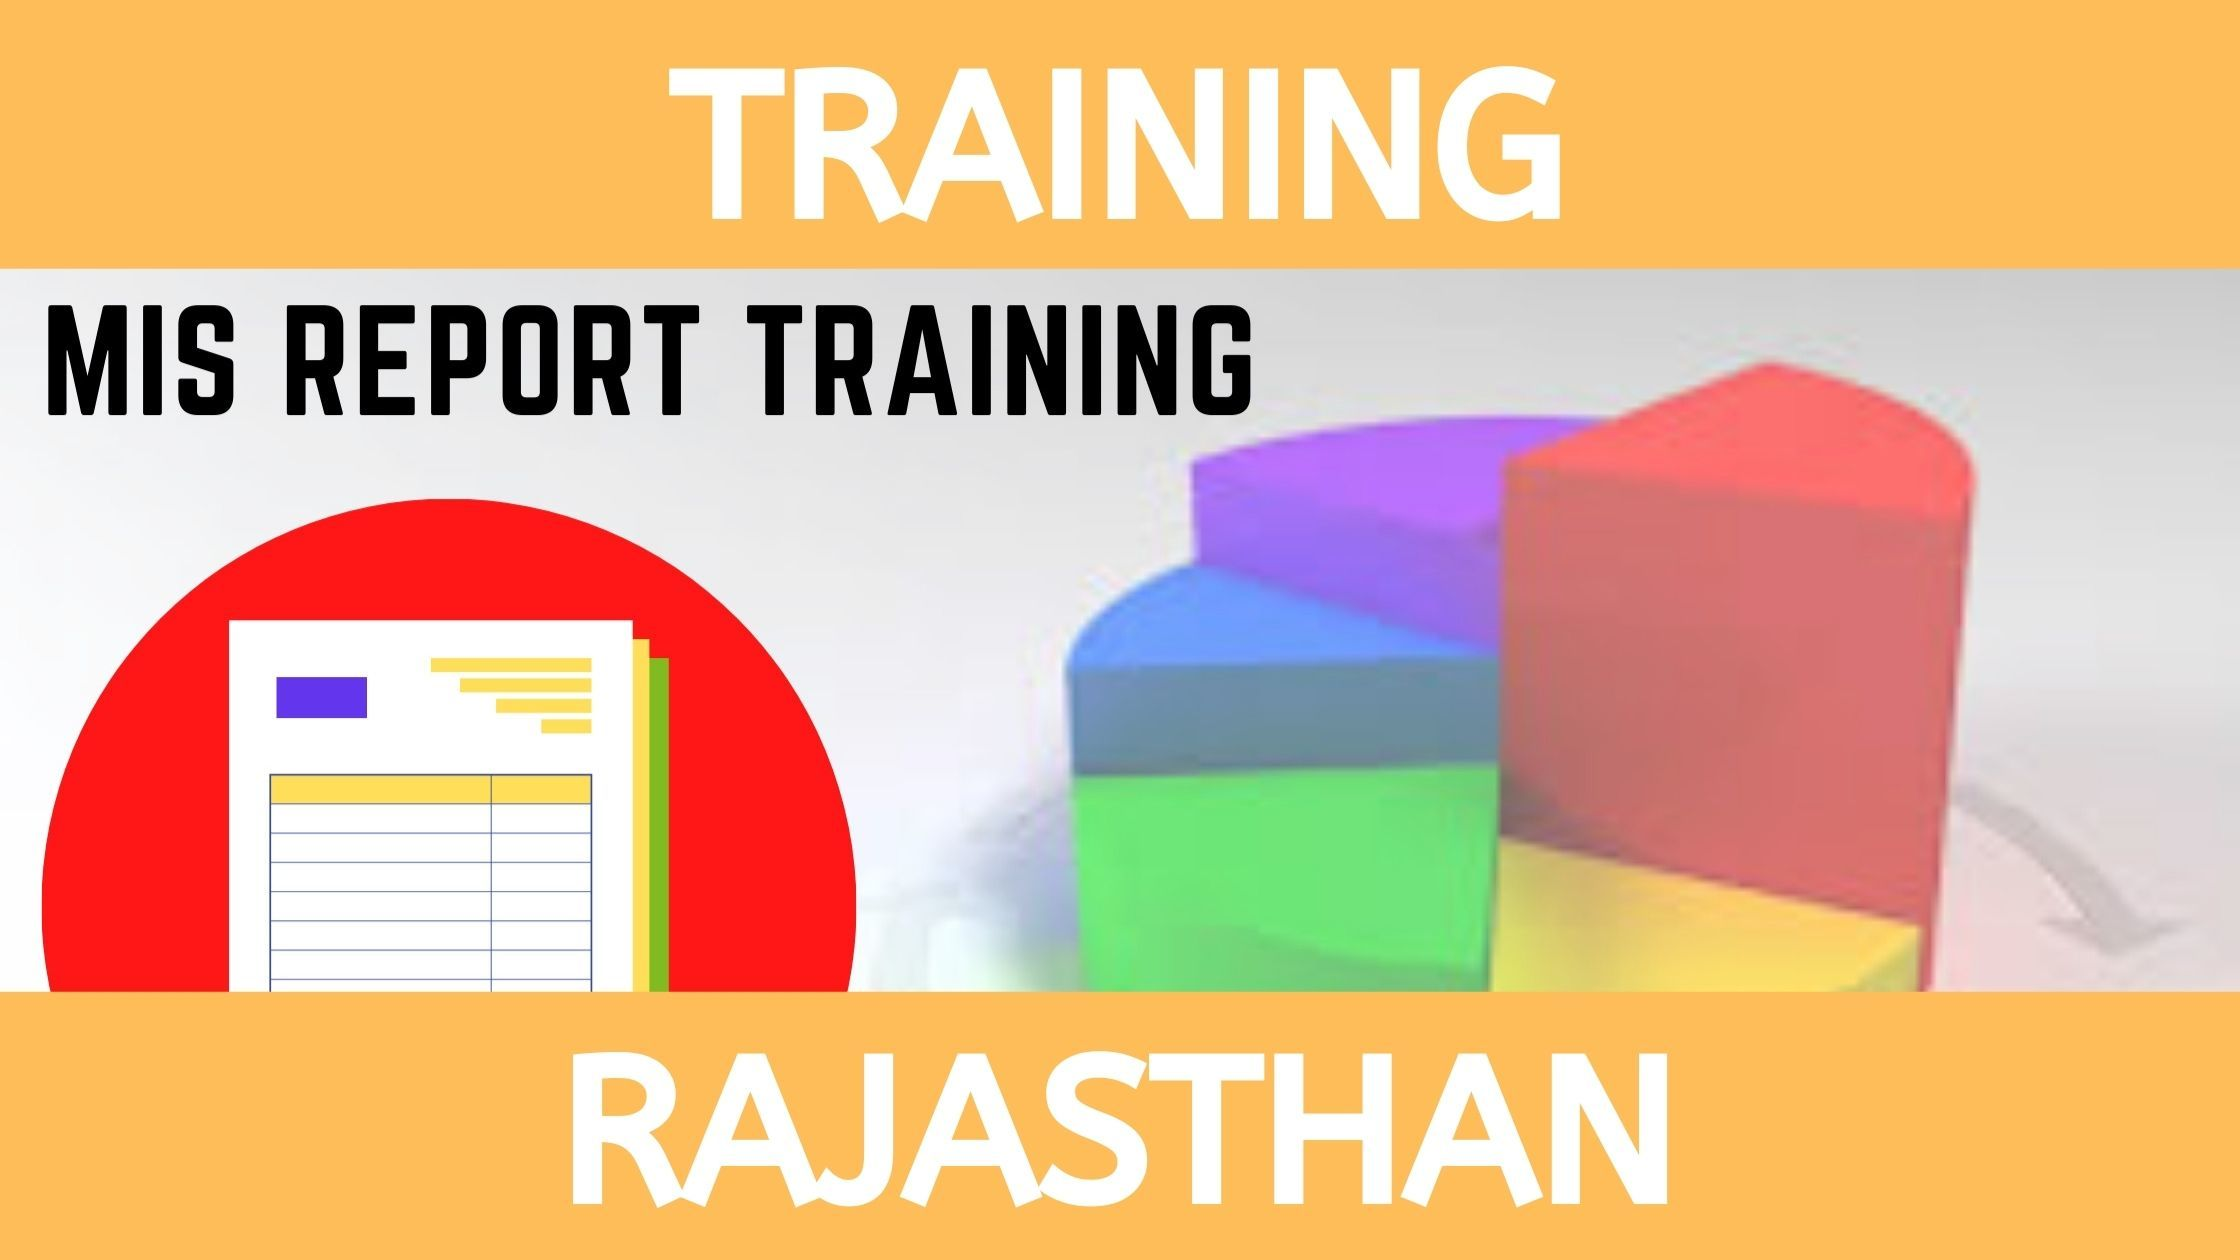 mis_report_training_in_rajasthan-background.jpeg